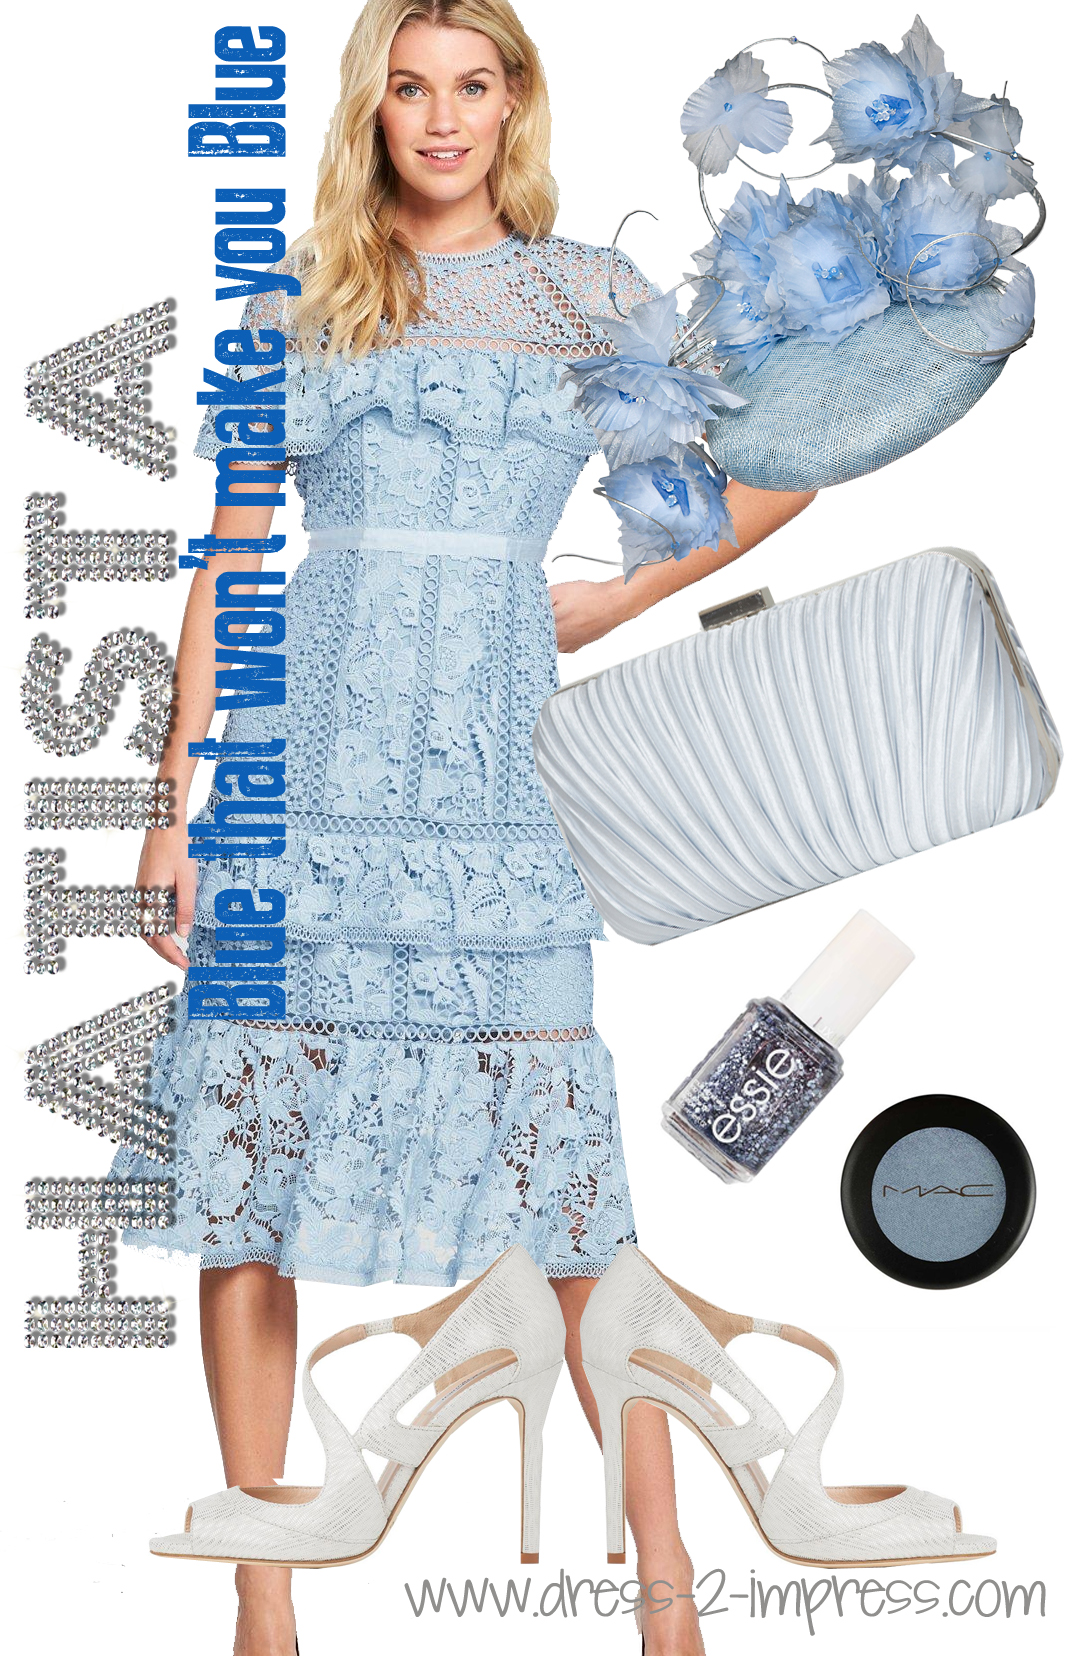 Baby Blue Lace Dress. Outfits with Pastel Blue. What to wear to the Kentucky Derby. Outfits for Royal Ascot. Pastel outfits for Melbourne Cup. What to wear to the Dubai World Cup - Need outfit inspiration for summer weddings? #blueoutfits #kentuckyderby #royalascot What to wear for a Day at the Races